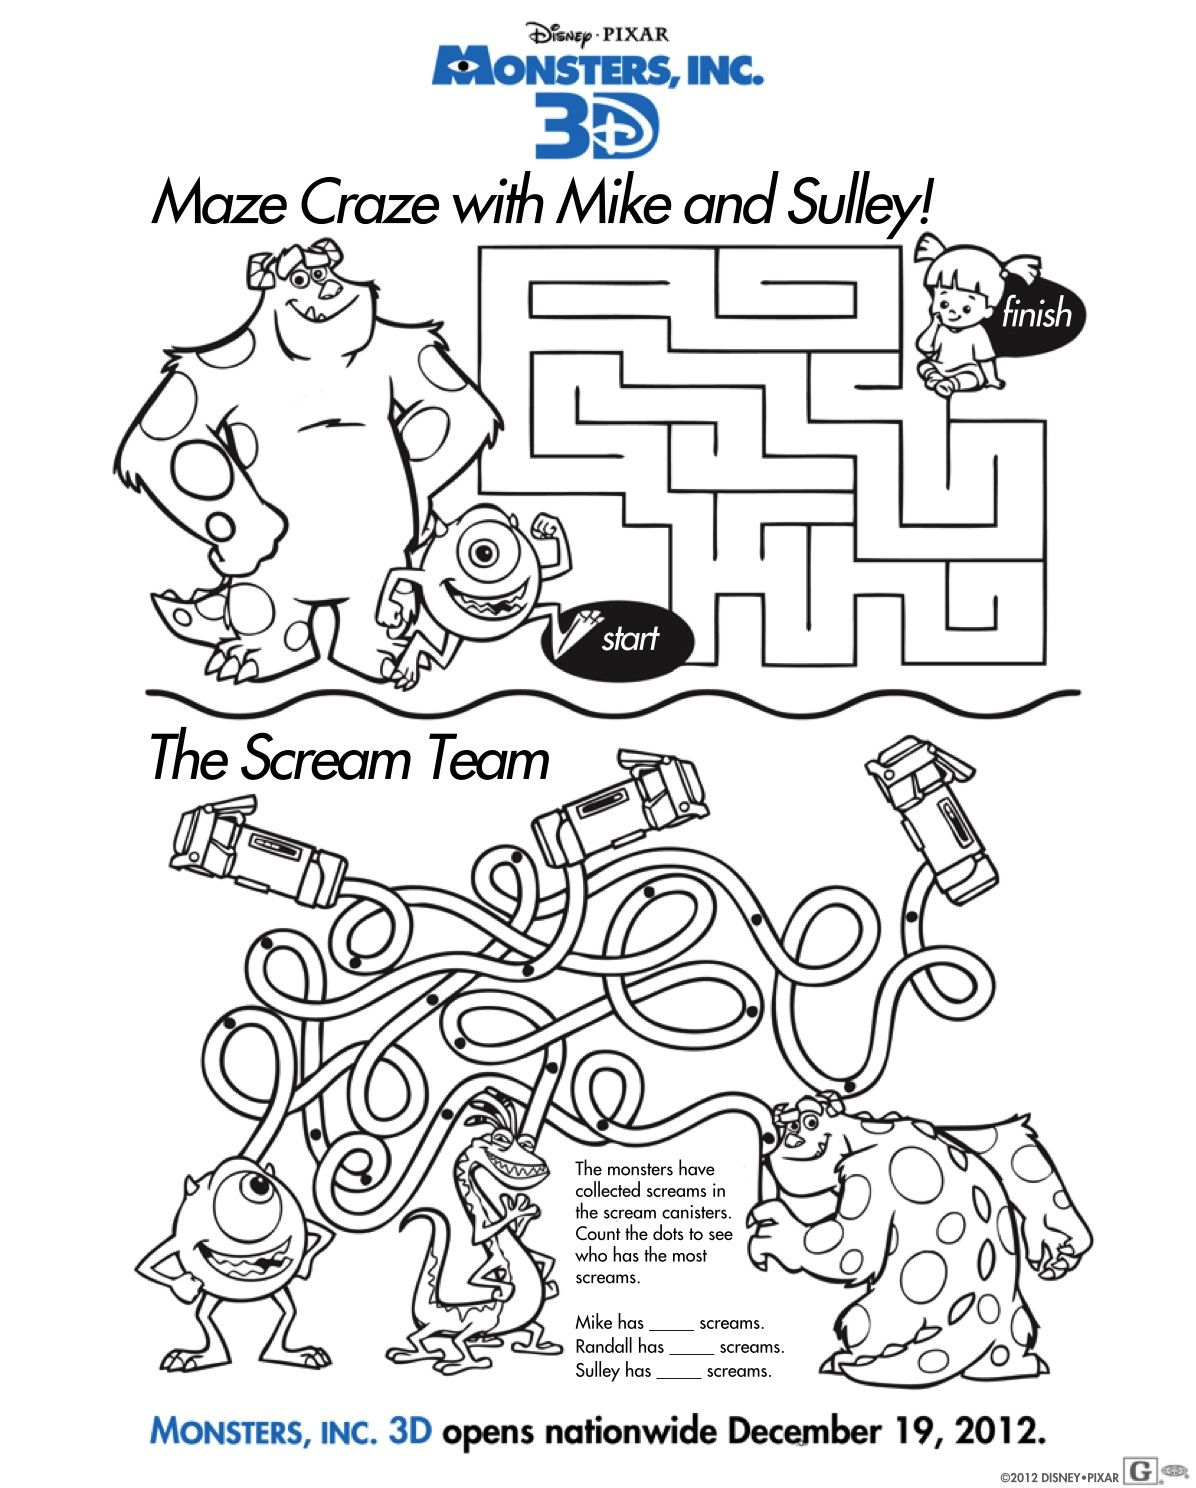 Monsters Inc Maze Craze